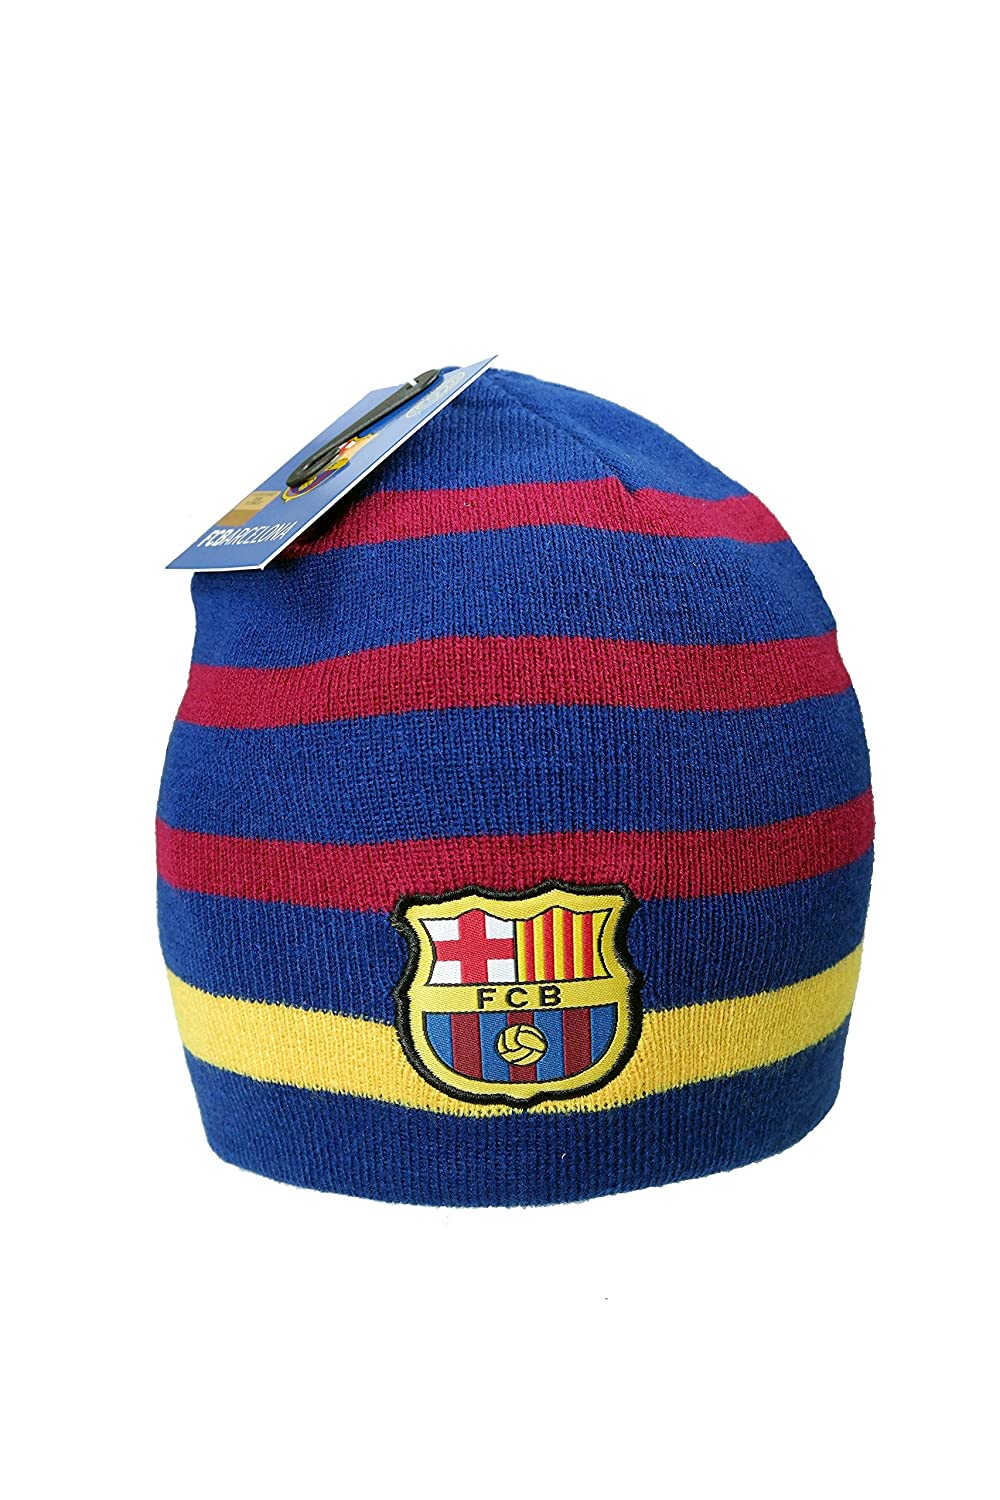 Amazon.com : Official FC Barcelona Beanie Knit Hat Cap Gorro Gorra : Sports Fan Beanies : Sports & Outdoors